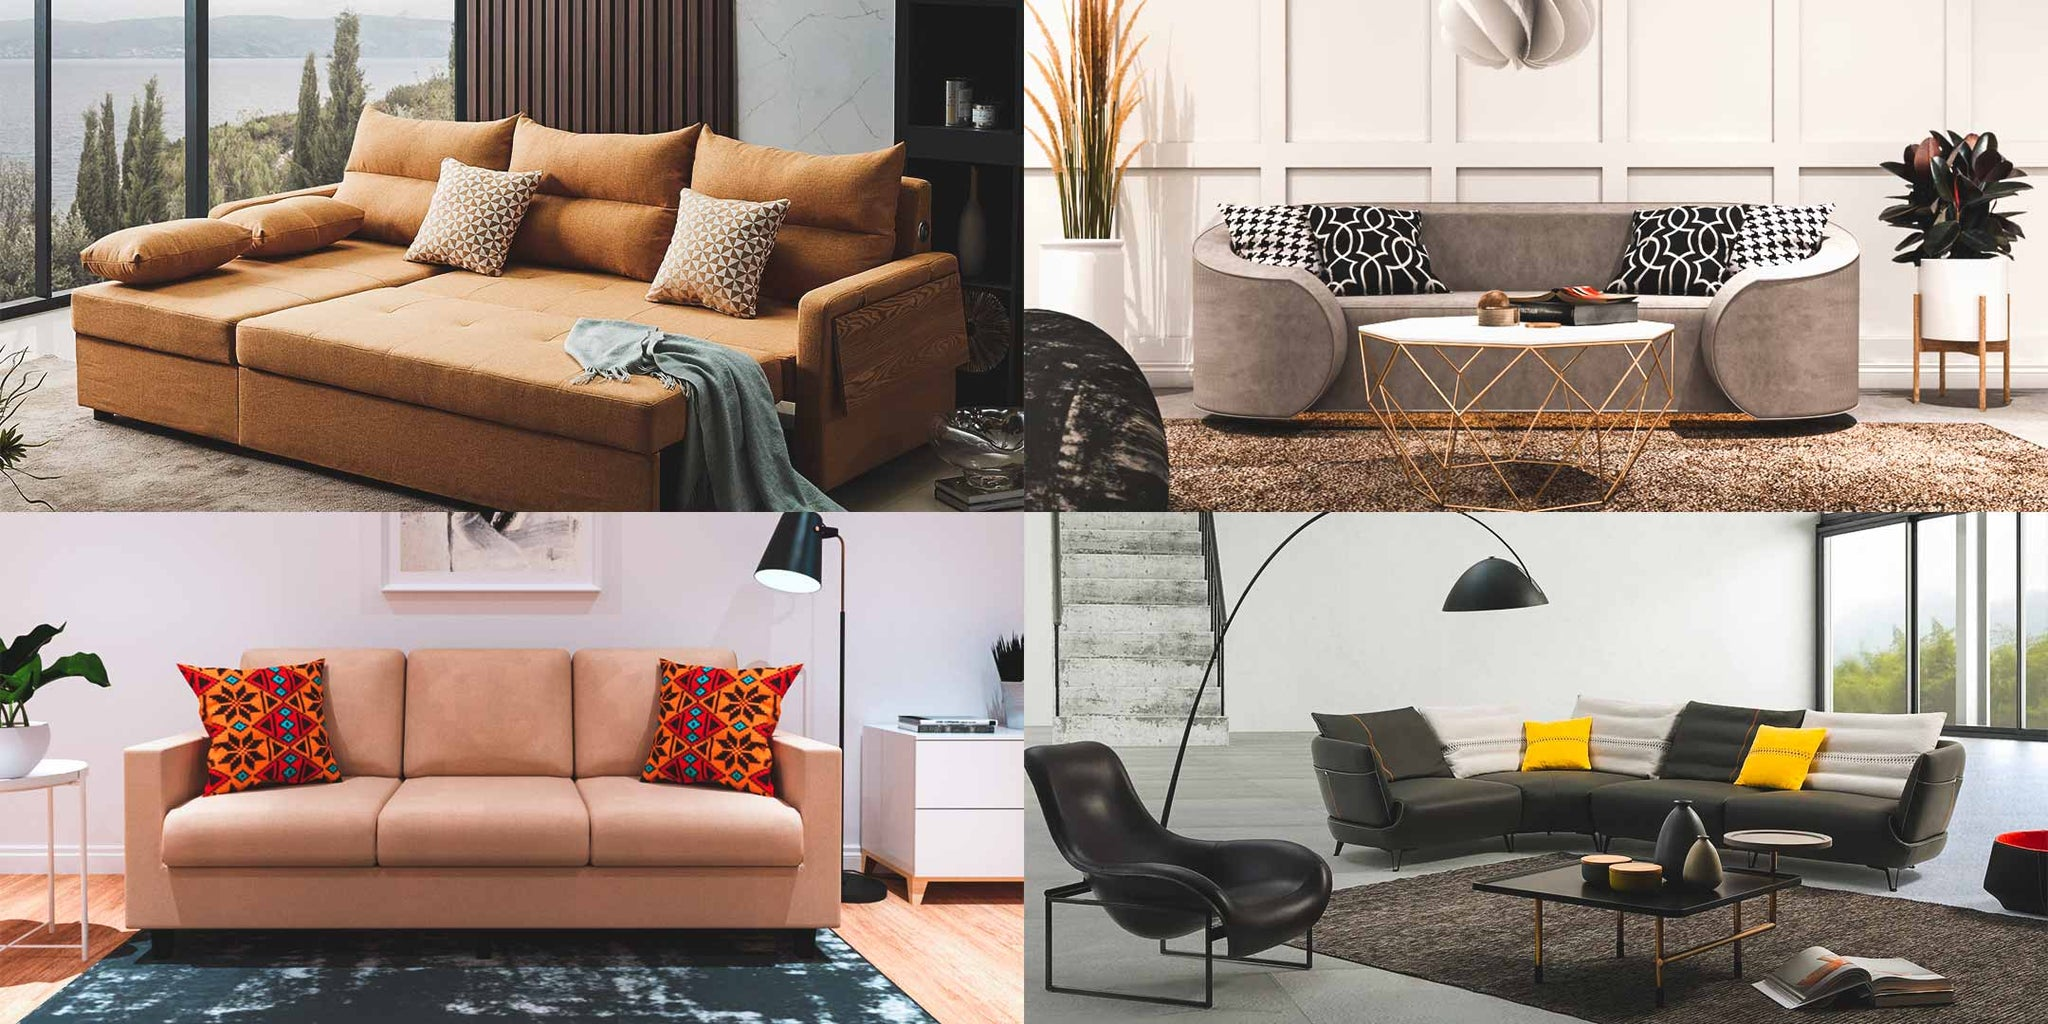 Different Styles of Sofa - Sofa Bed, Sectional Sofa, Mid-Century Sofa